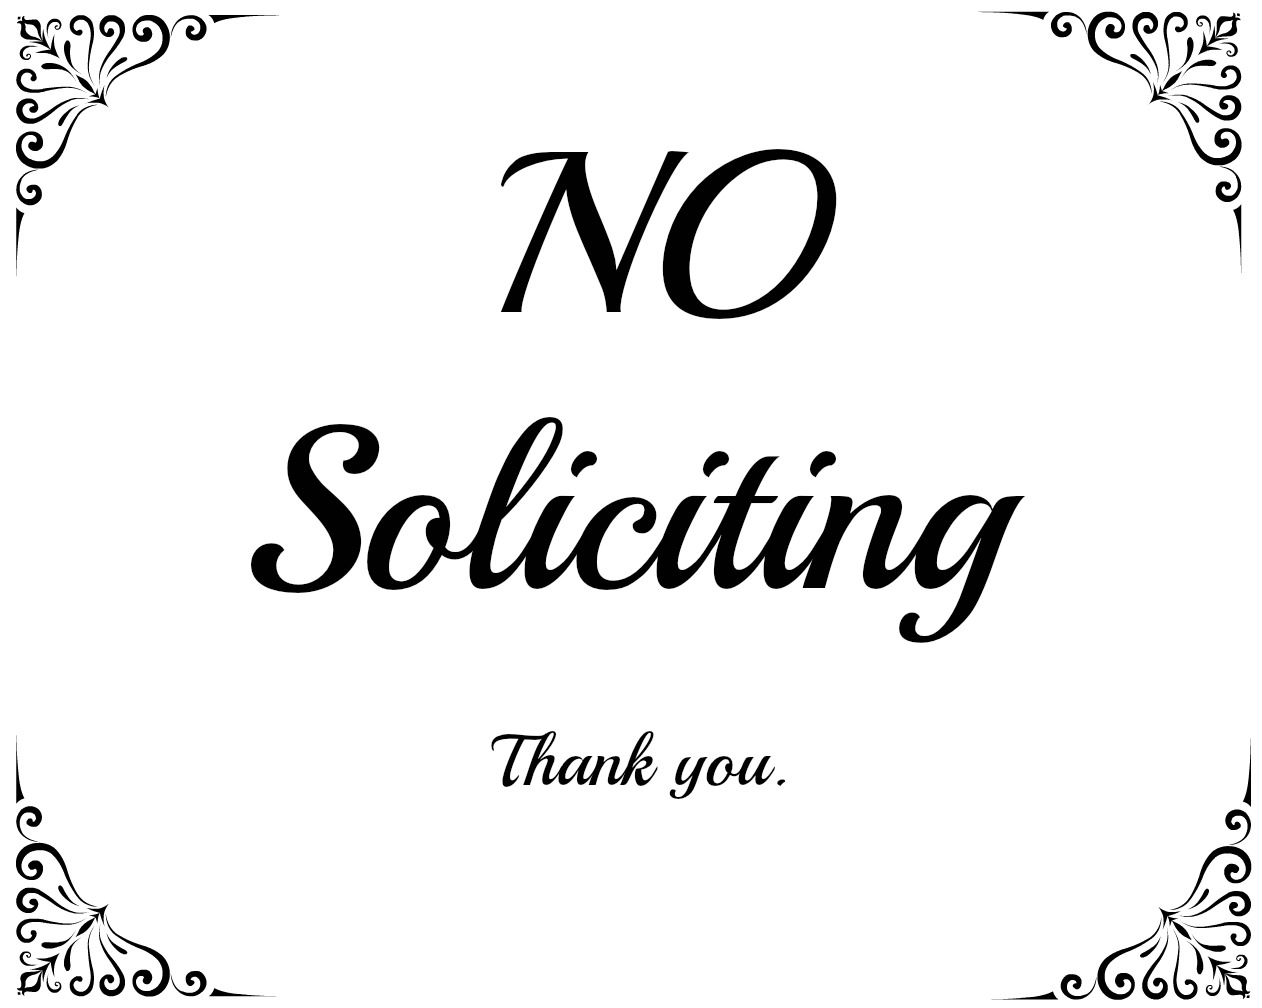 image about No Soliciting Printable named Cunning Confessions: No Soliciting Printables and a Caution